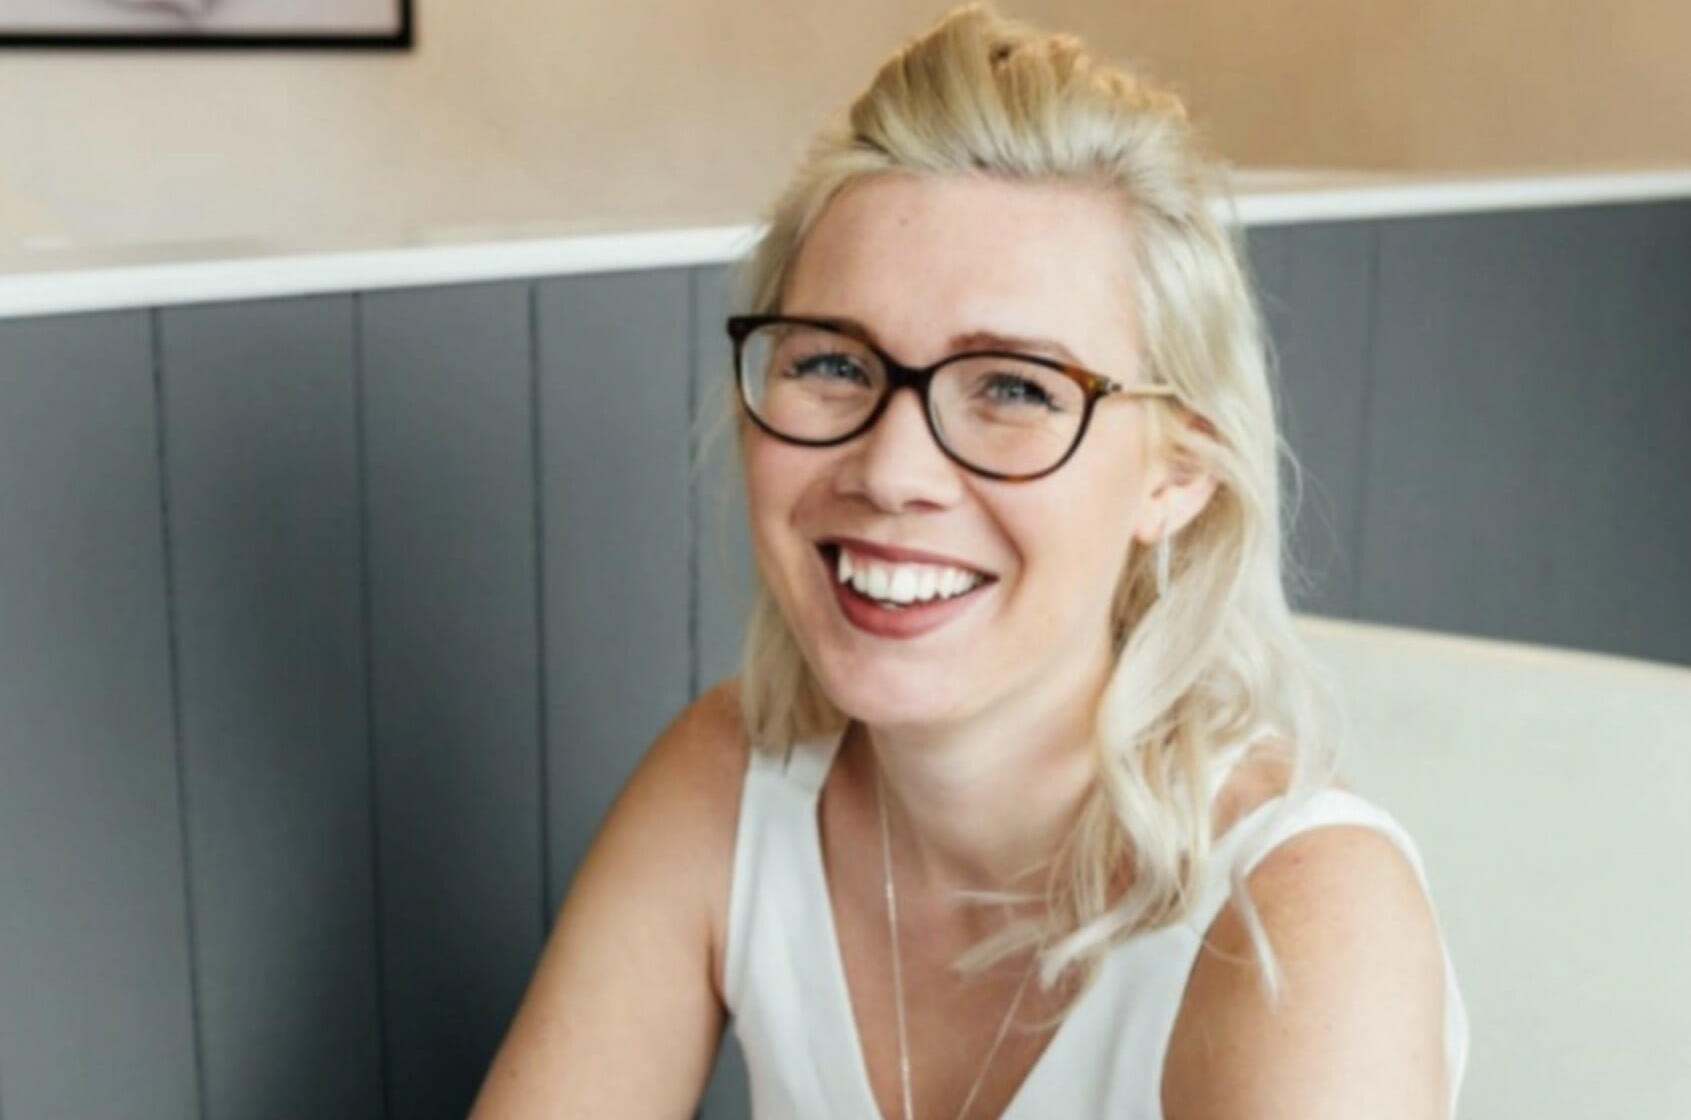 Personalisation is the only thing that can save retail post Covid, says jeweller Roseanna Croft